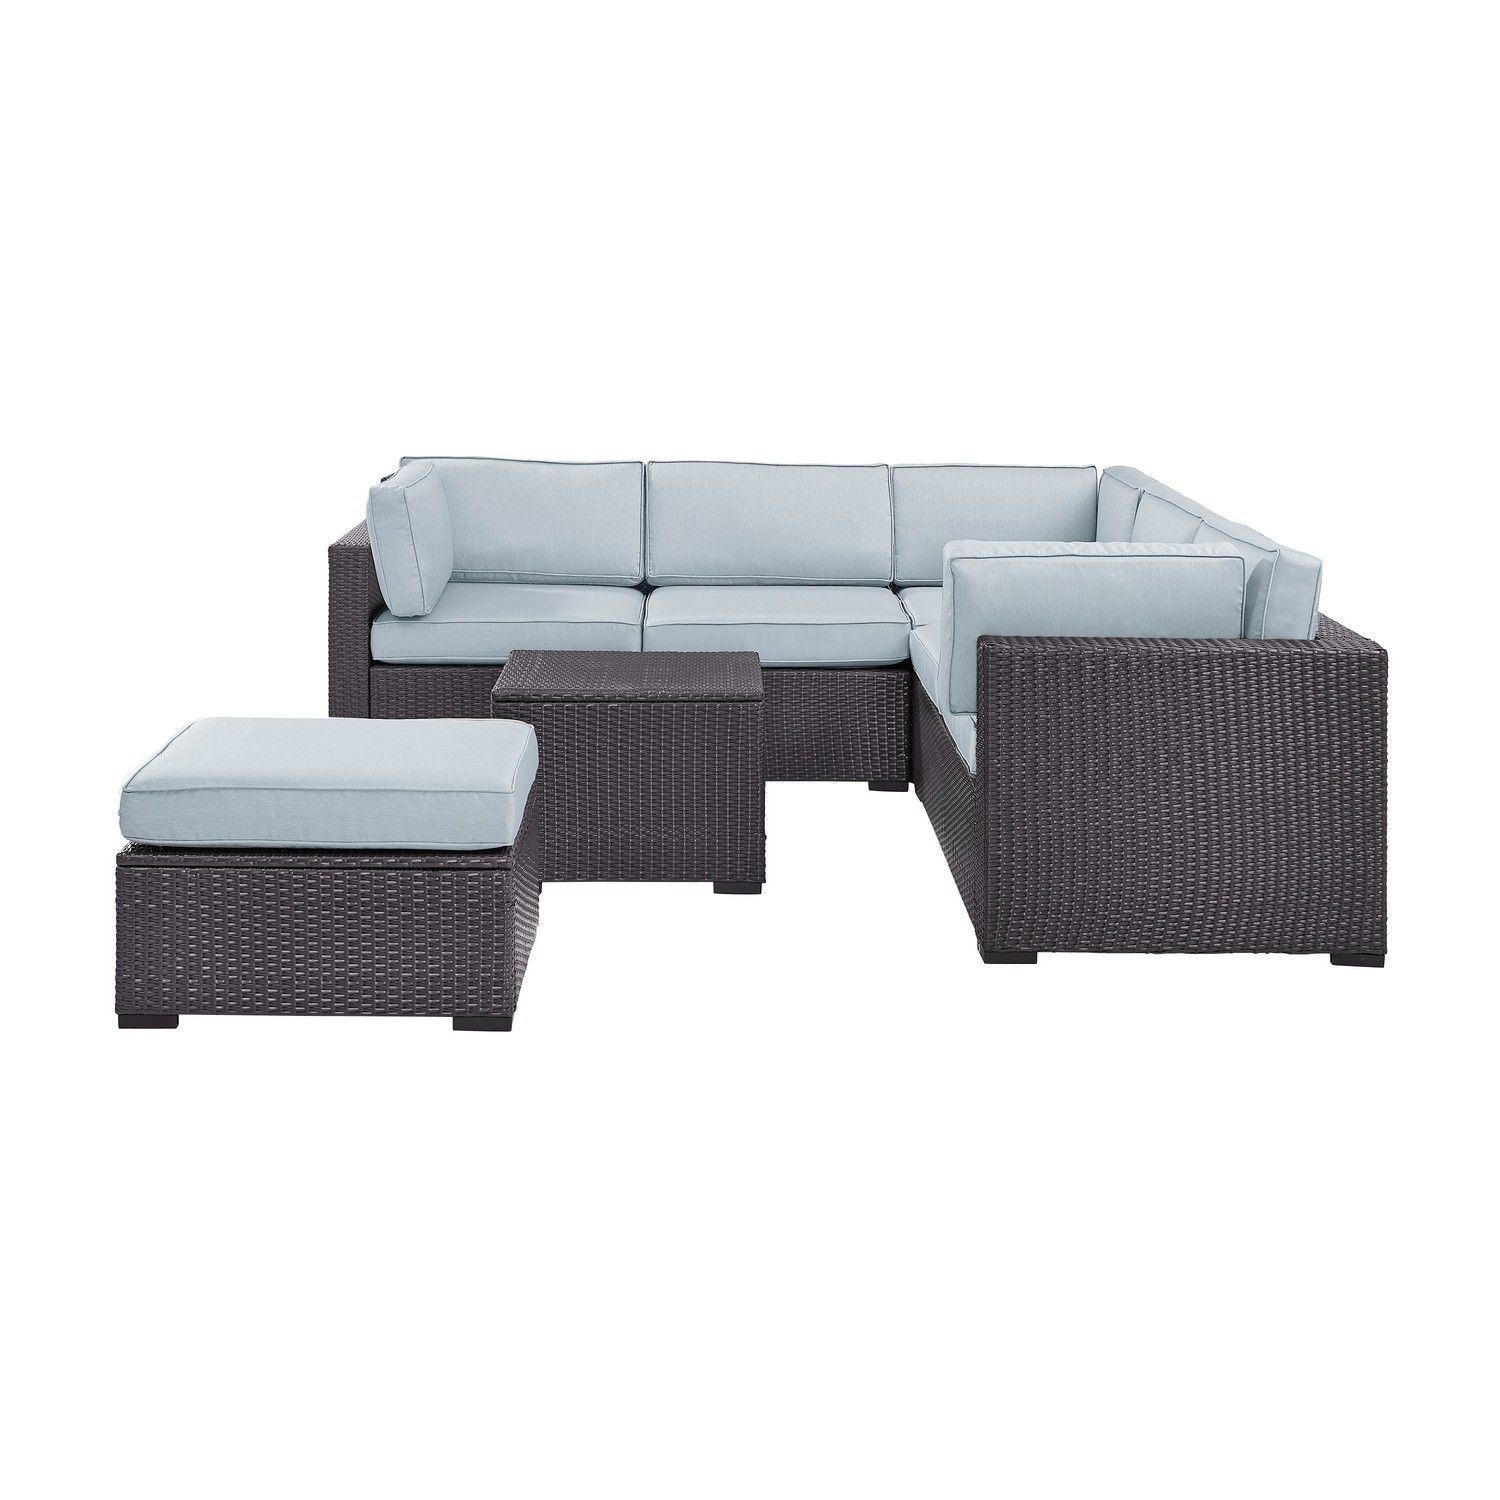 Crosley Biscayne 5-PC Outdoor Wicker Sectional Set - 2 Loveseats, Corner Chair, Coffee Table, Ottoman - Mist/Brown